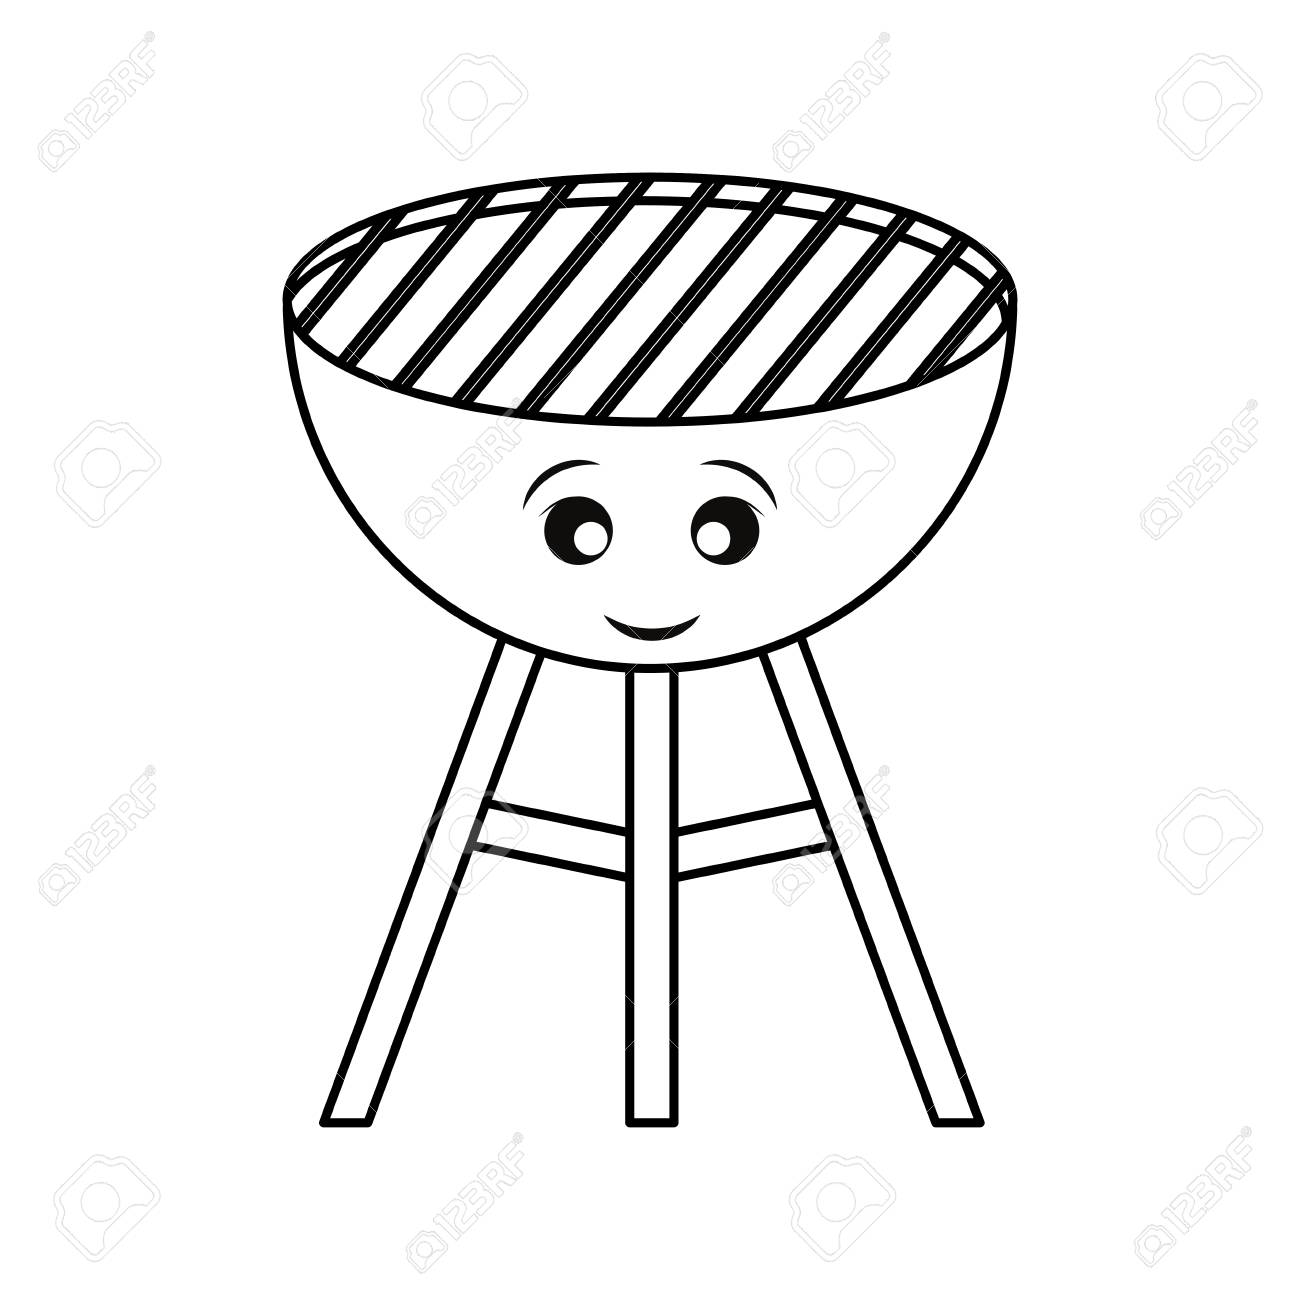 Bbq Grill Clipart Black And White (106+ images in Collection) Page 3.